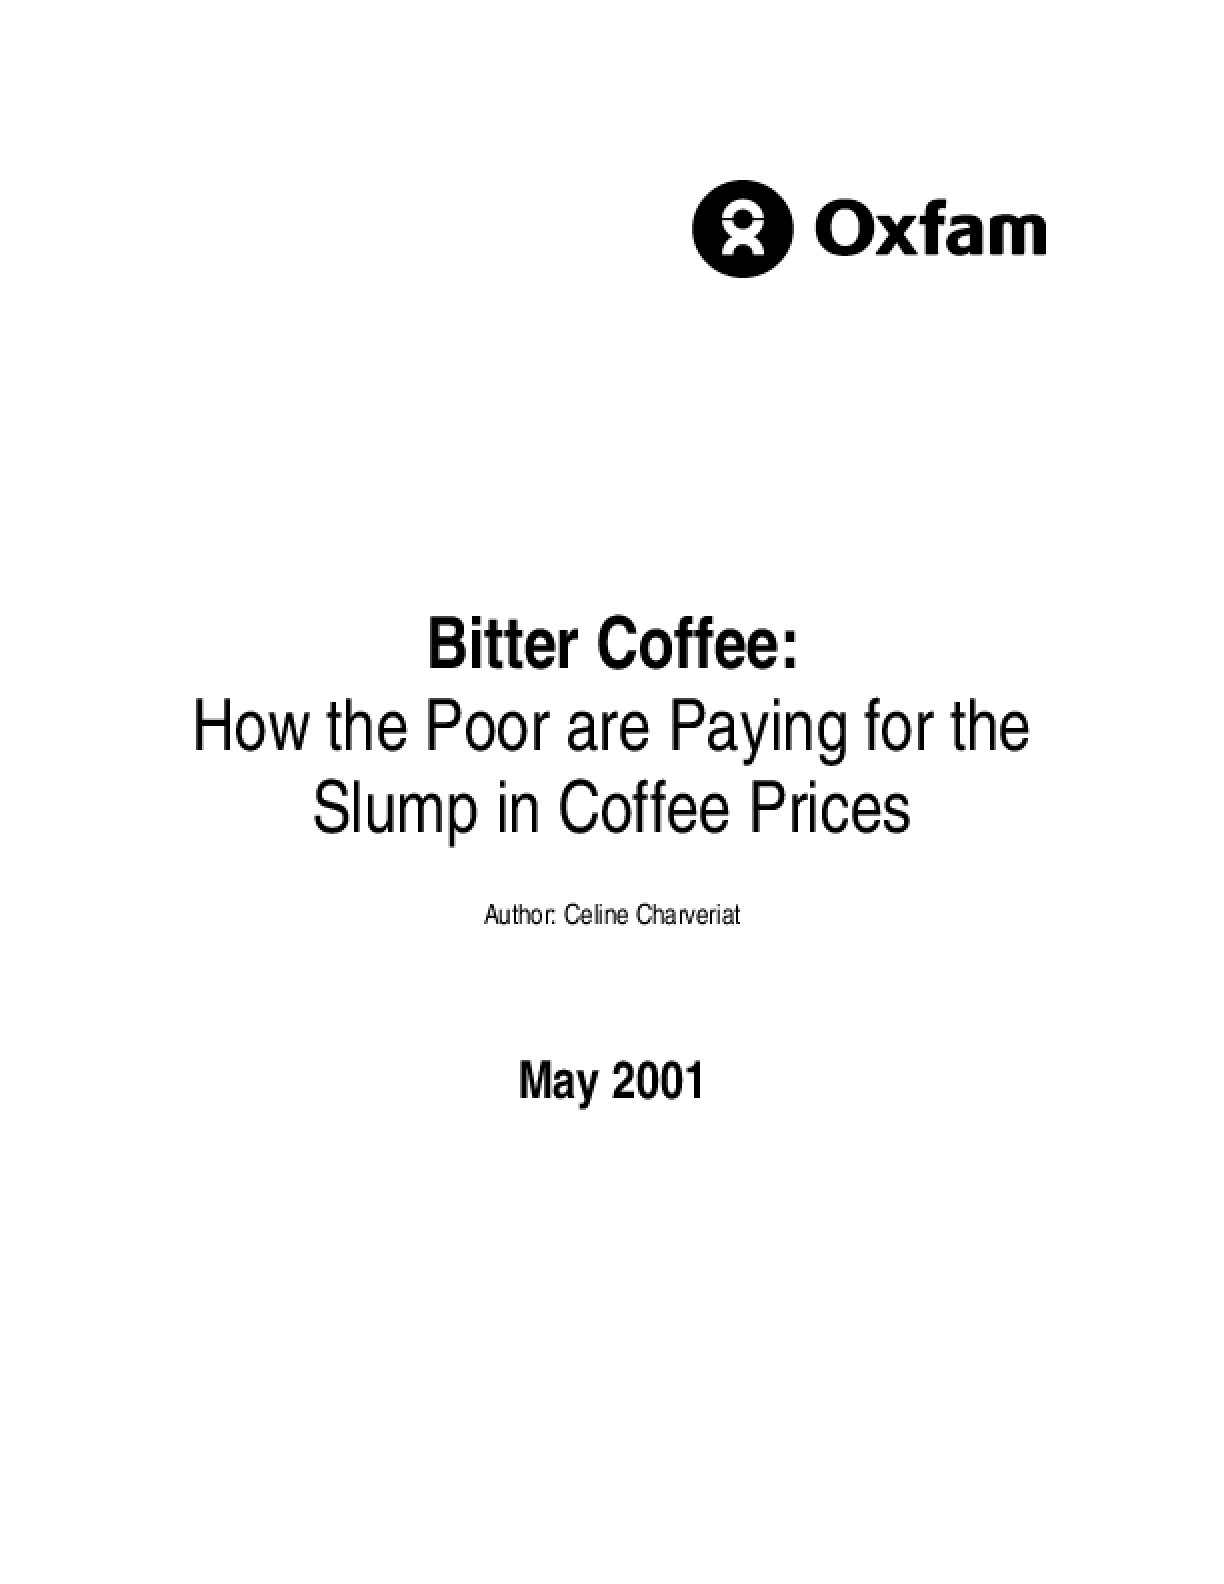 Bitter Coffee: How the poor are paying for the slump in coffee prices